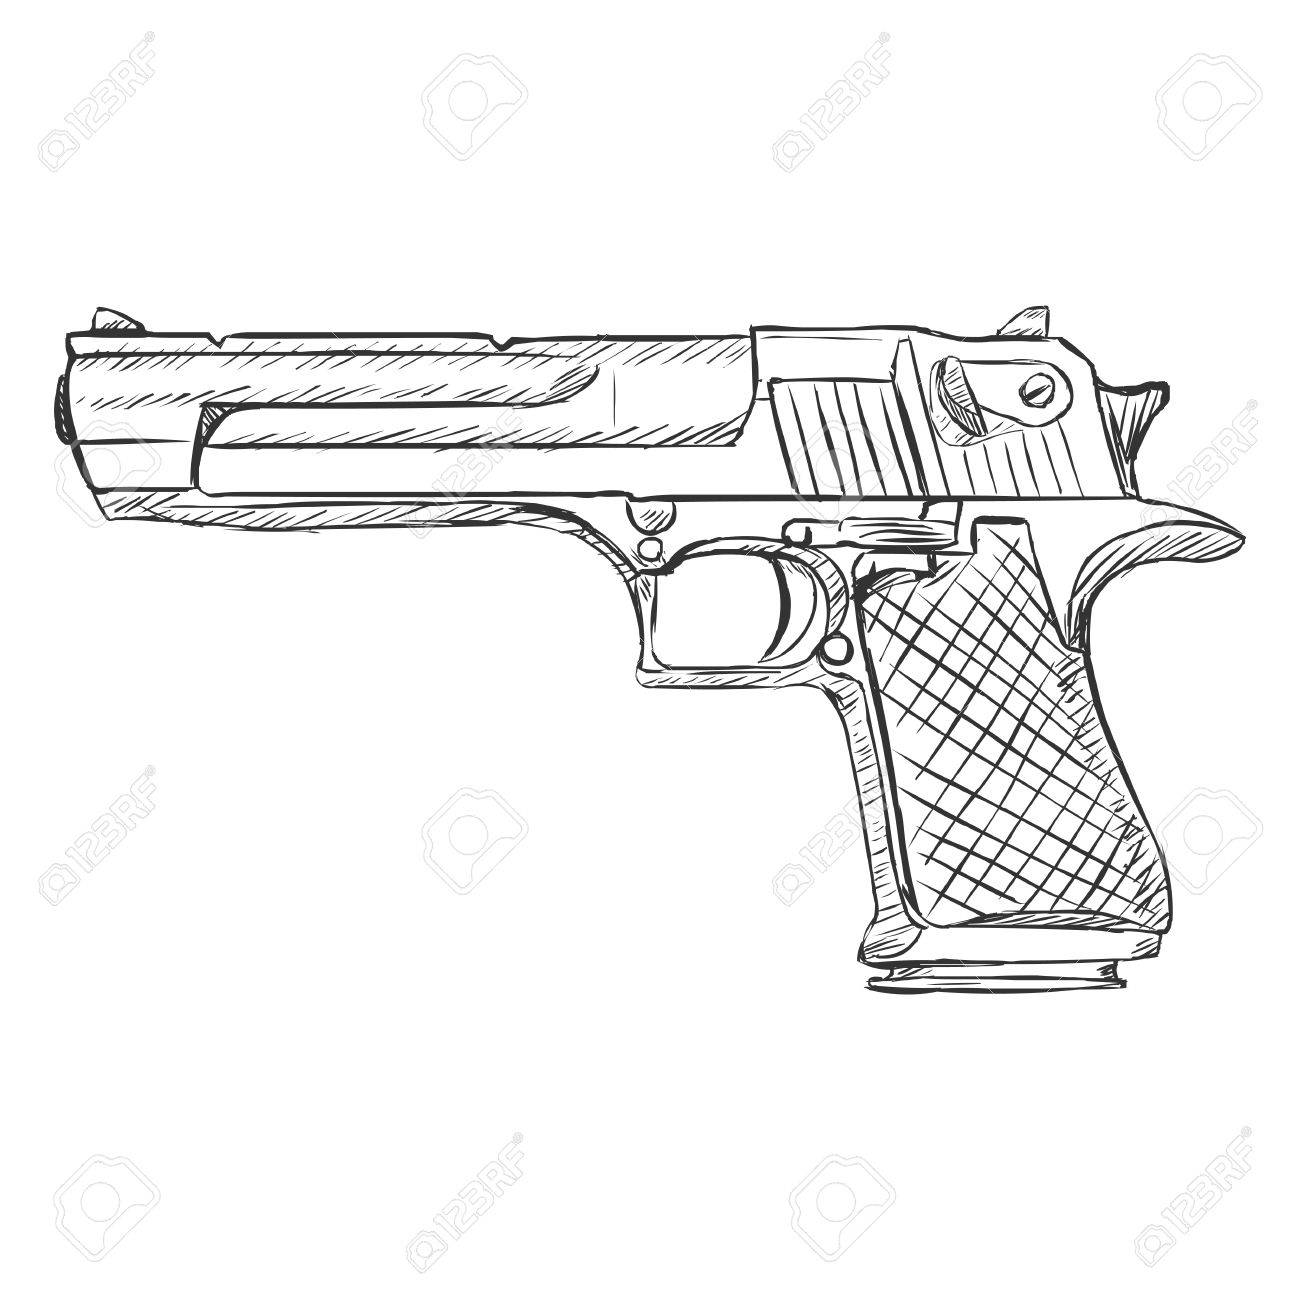 vector sketch desert eagle pistol on white background royalty free